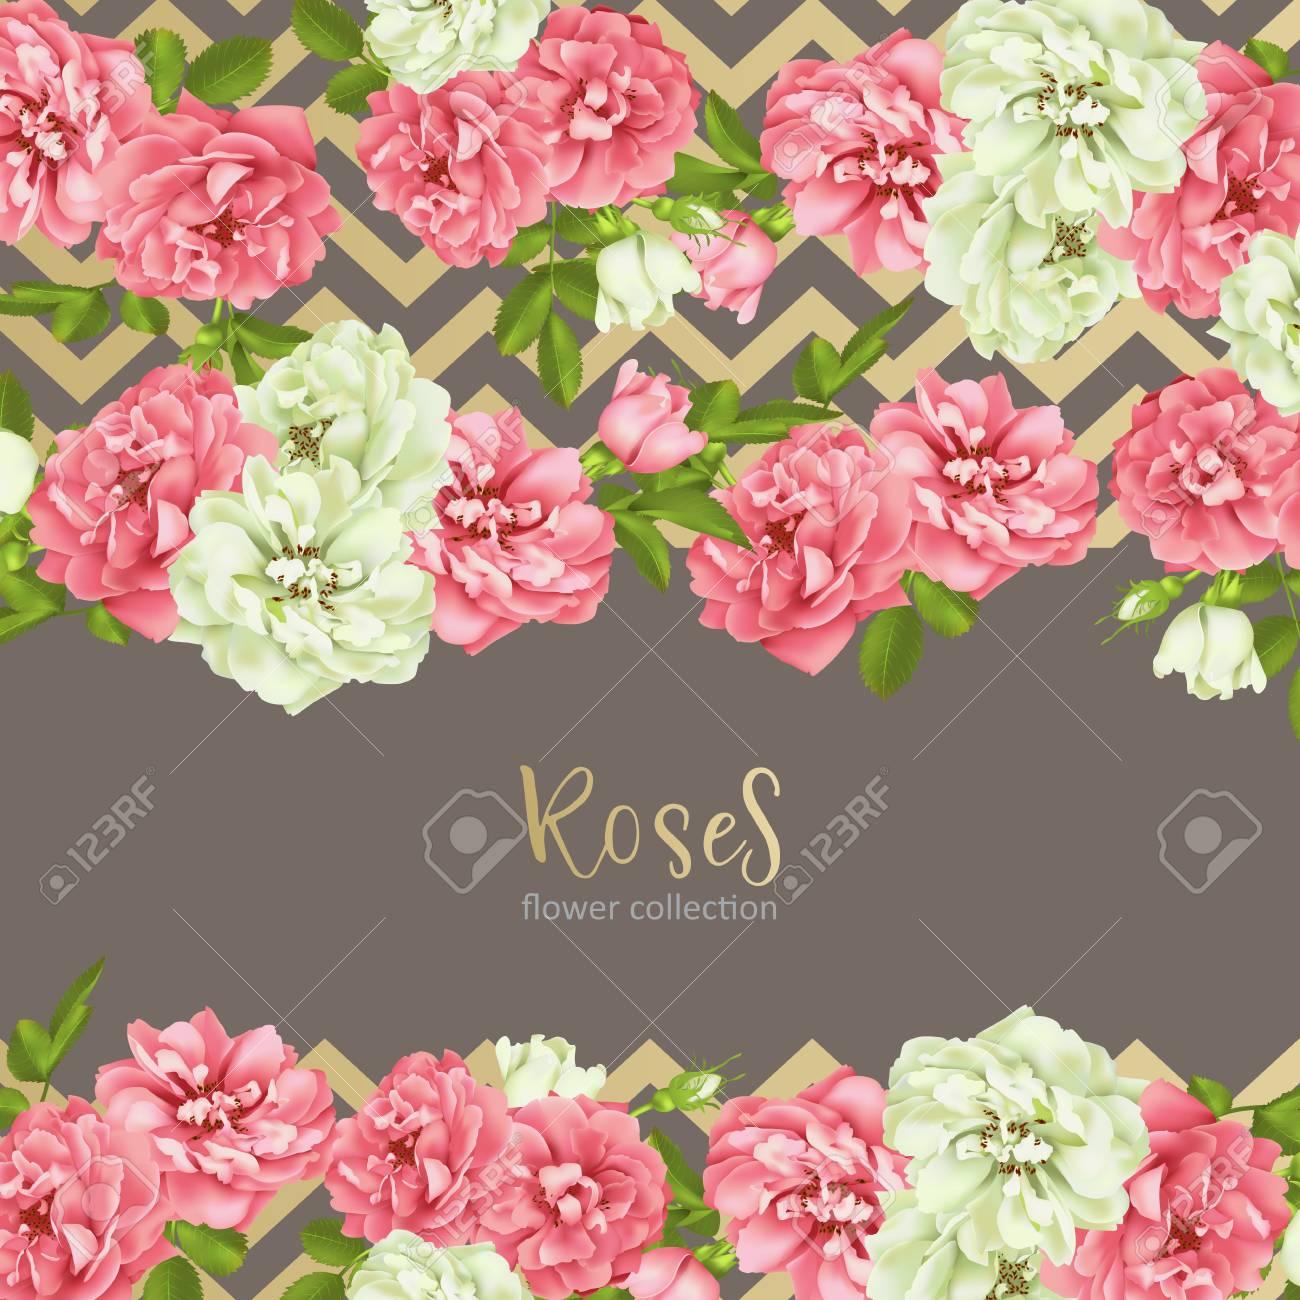 Wedding Invitation With Wild Rose Flowers Royalty Free Cliparts ...